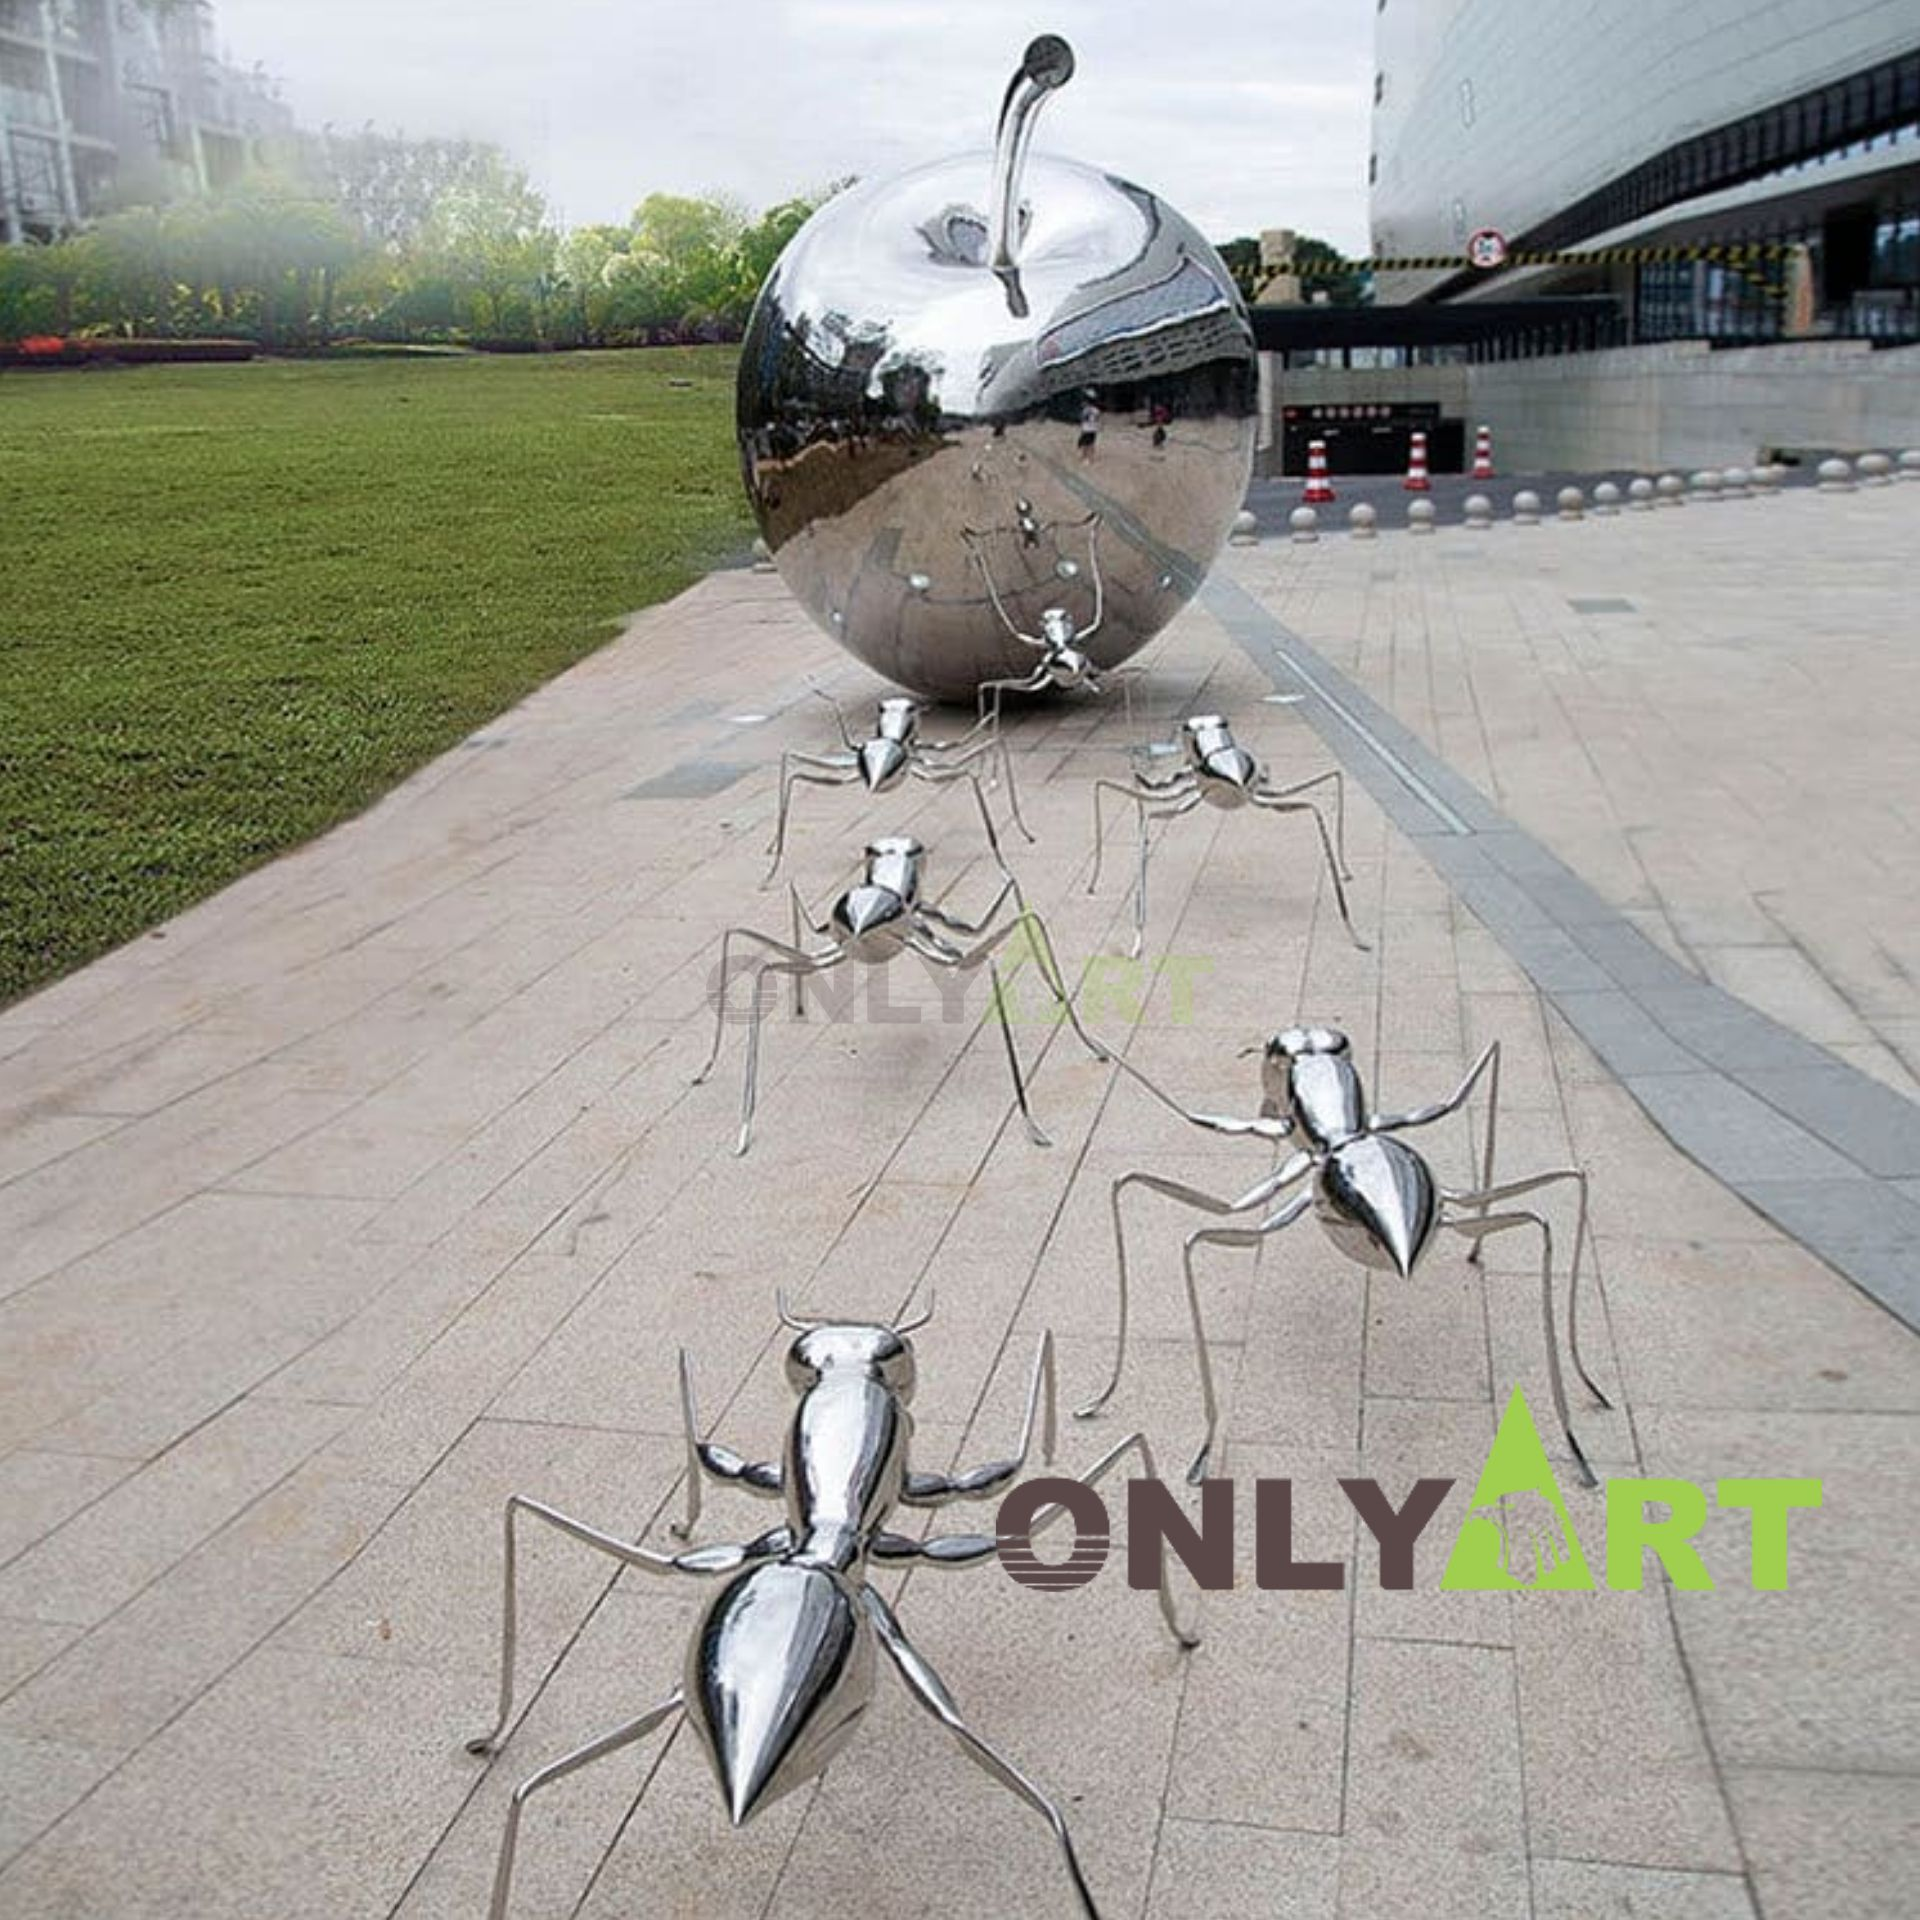 Do you like these stainless steel apple and ants sculptures?